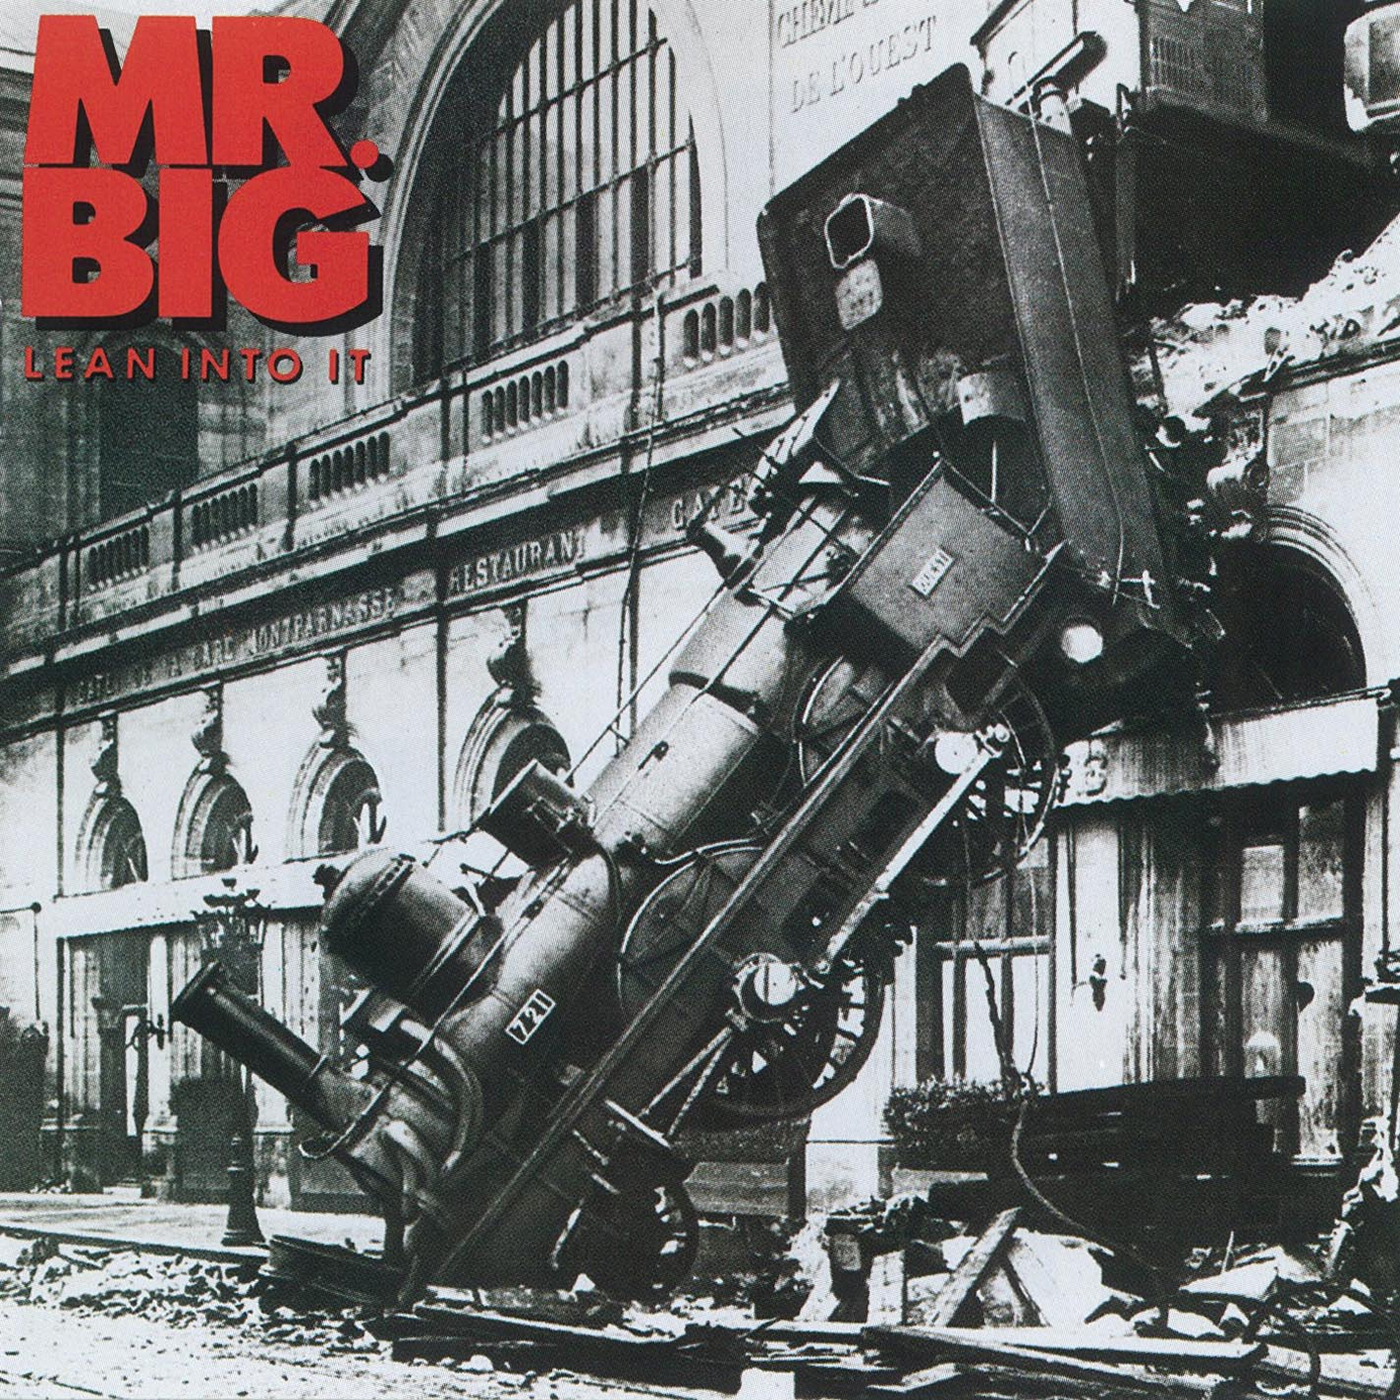 Mr. Big - Lean Into It (Rsd) [Record Store Day] [RSD Drops 2021]